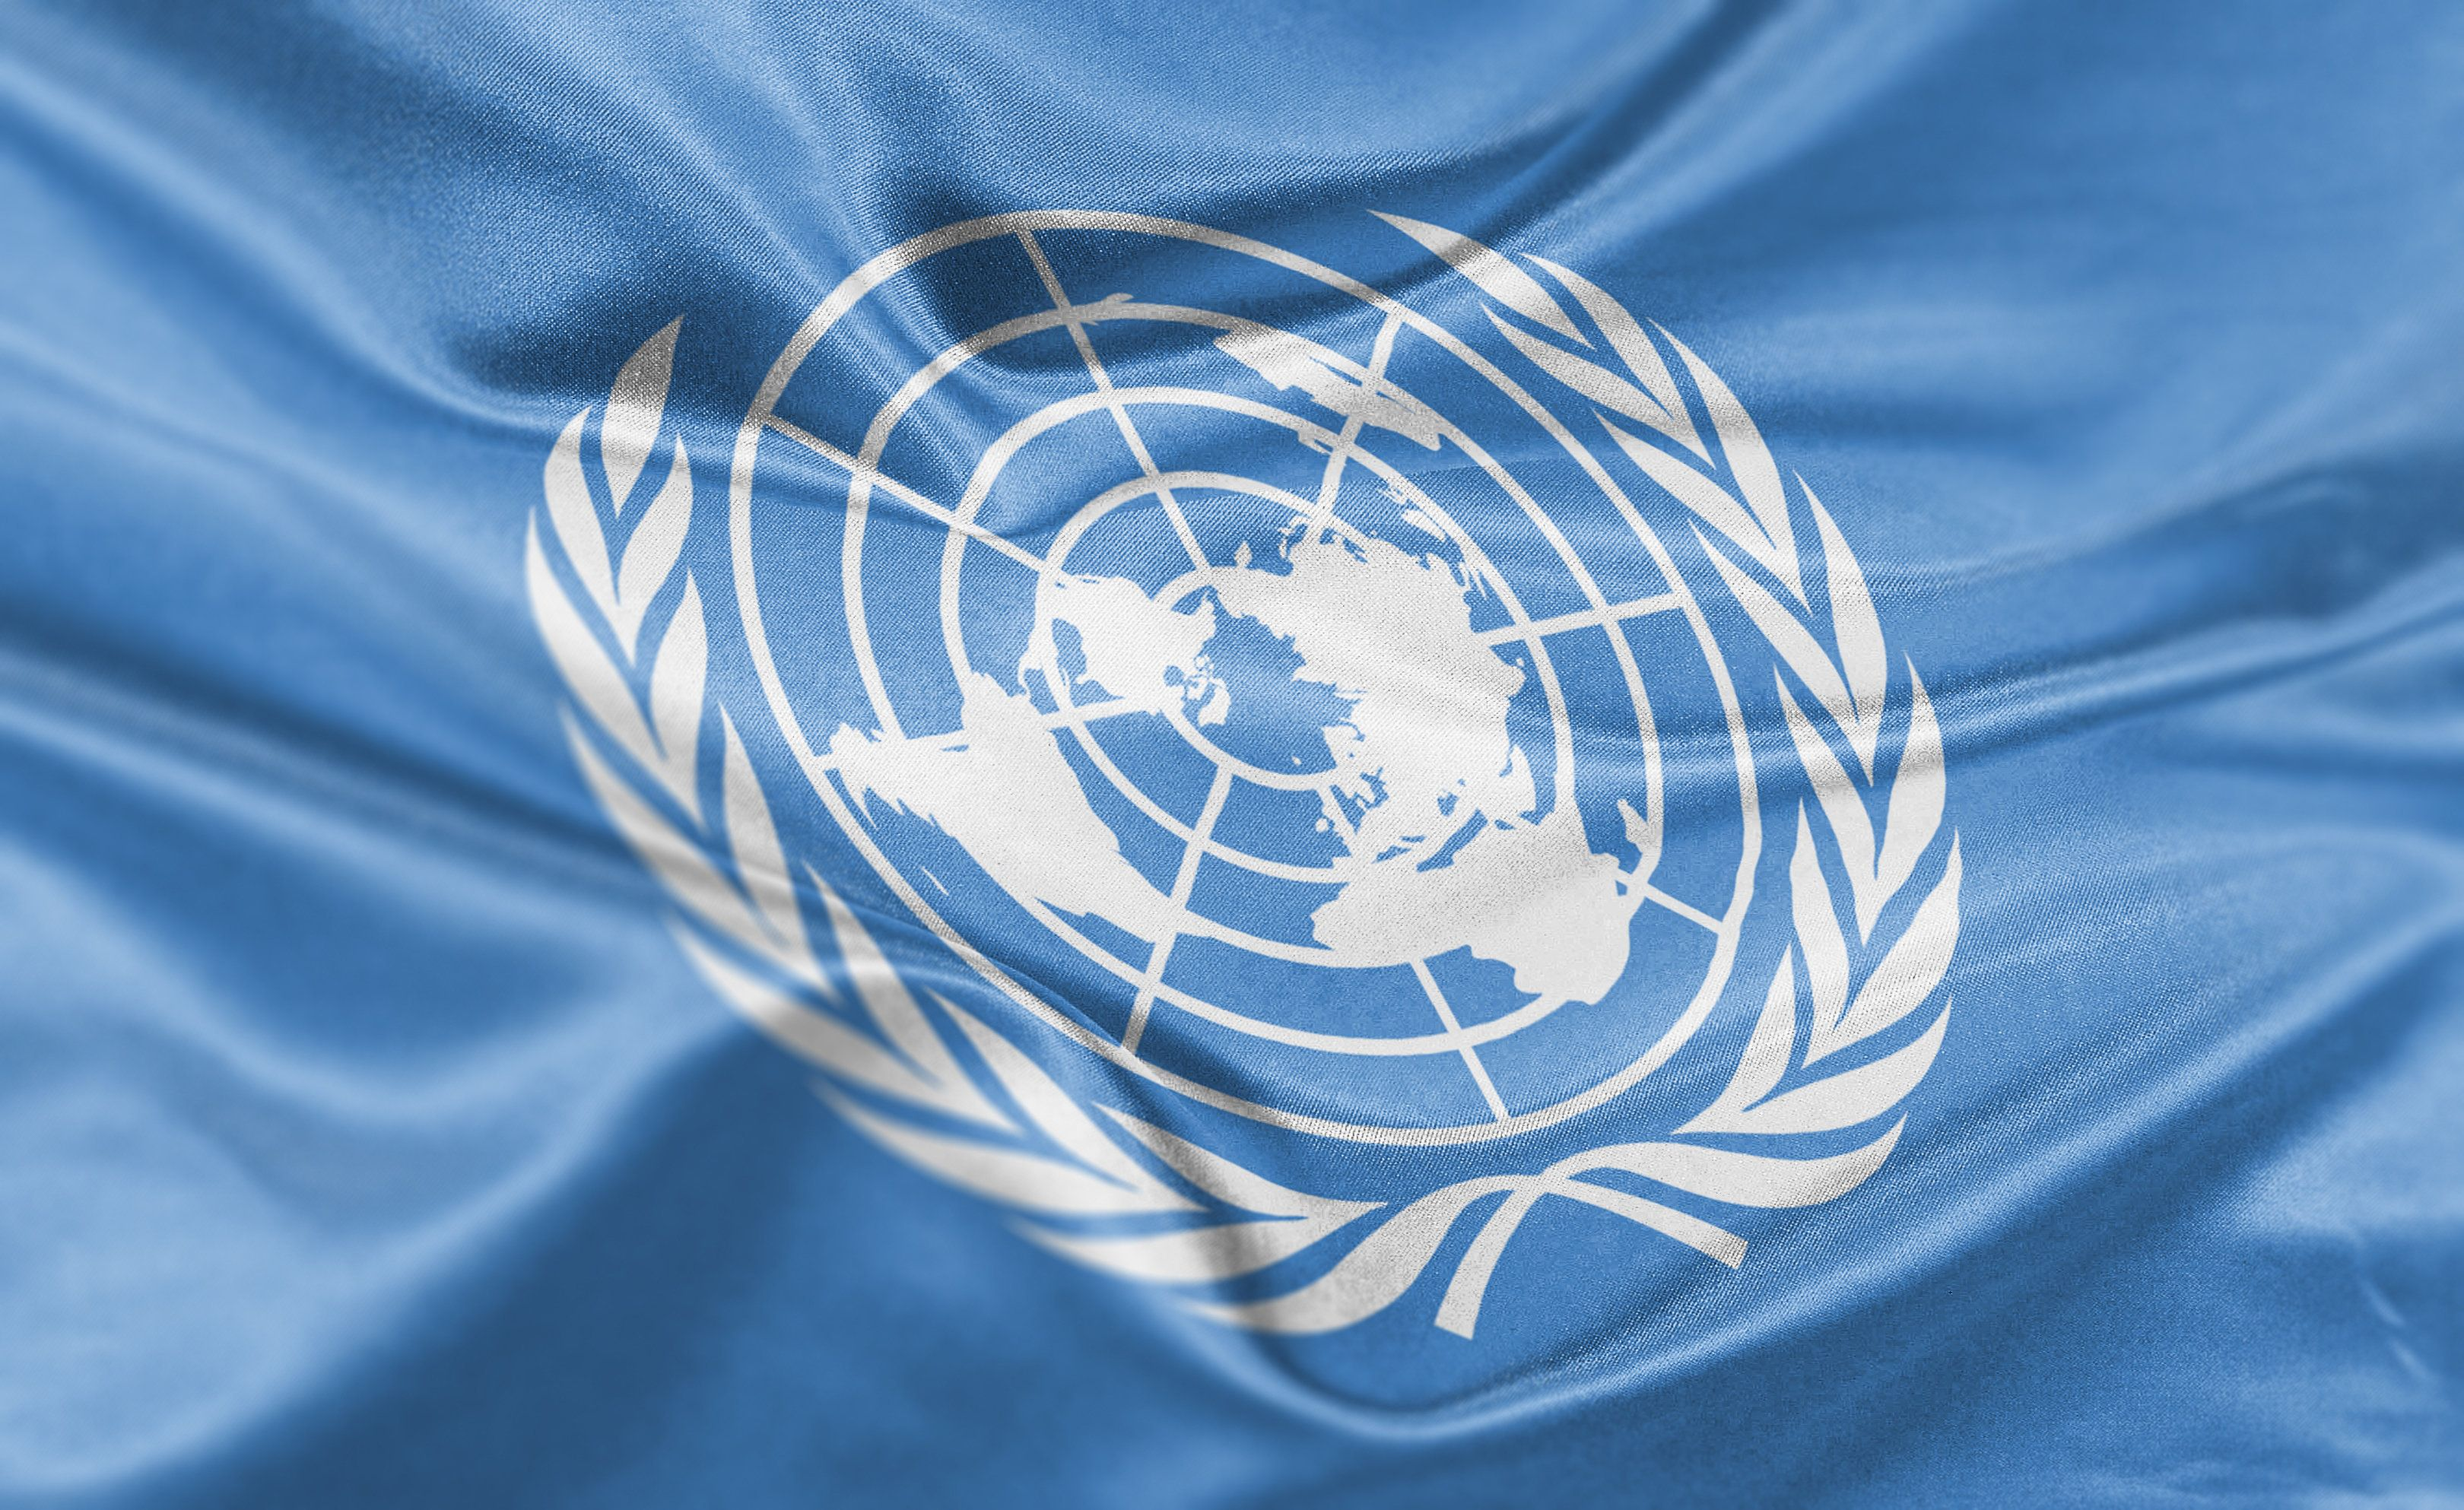 The U.N. has taken steps to address what some current and former employees say is a widespread culture...